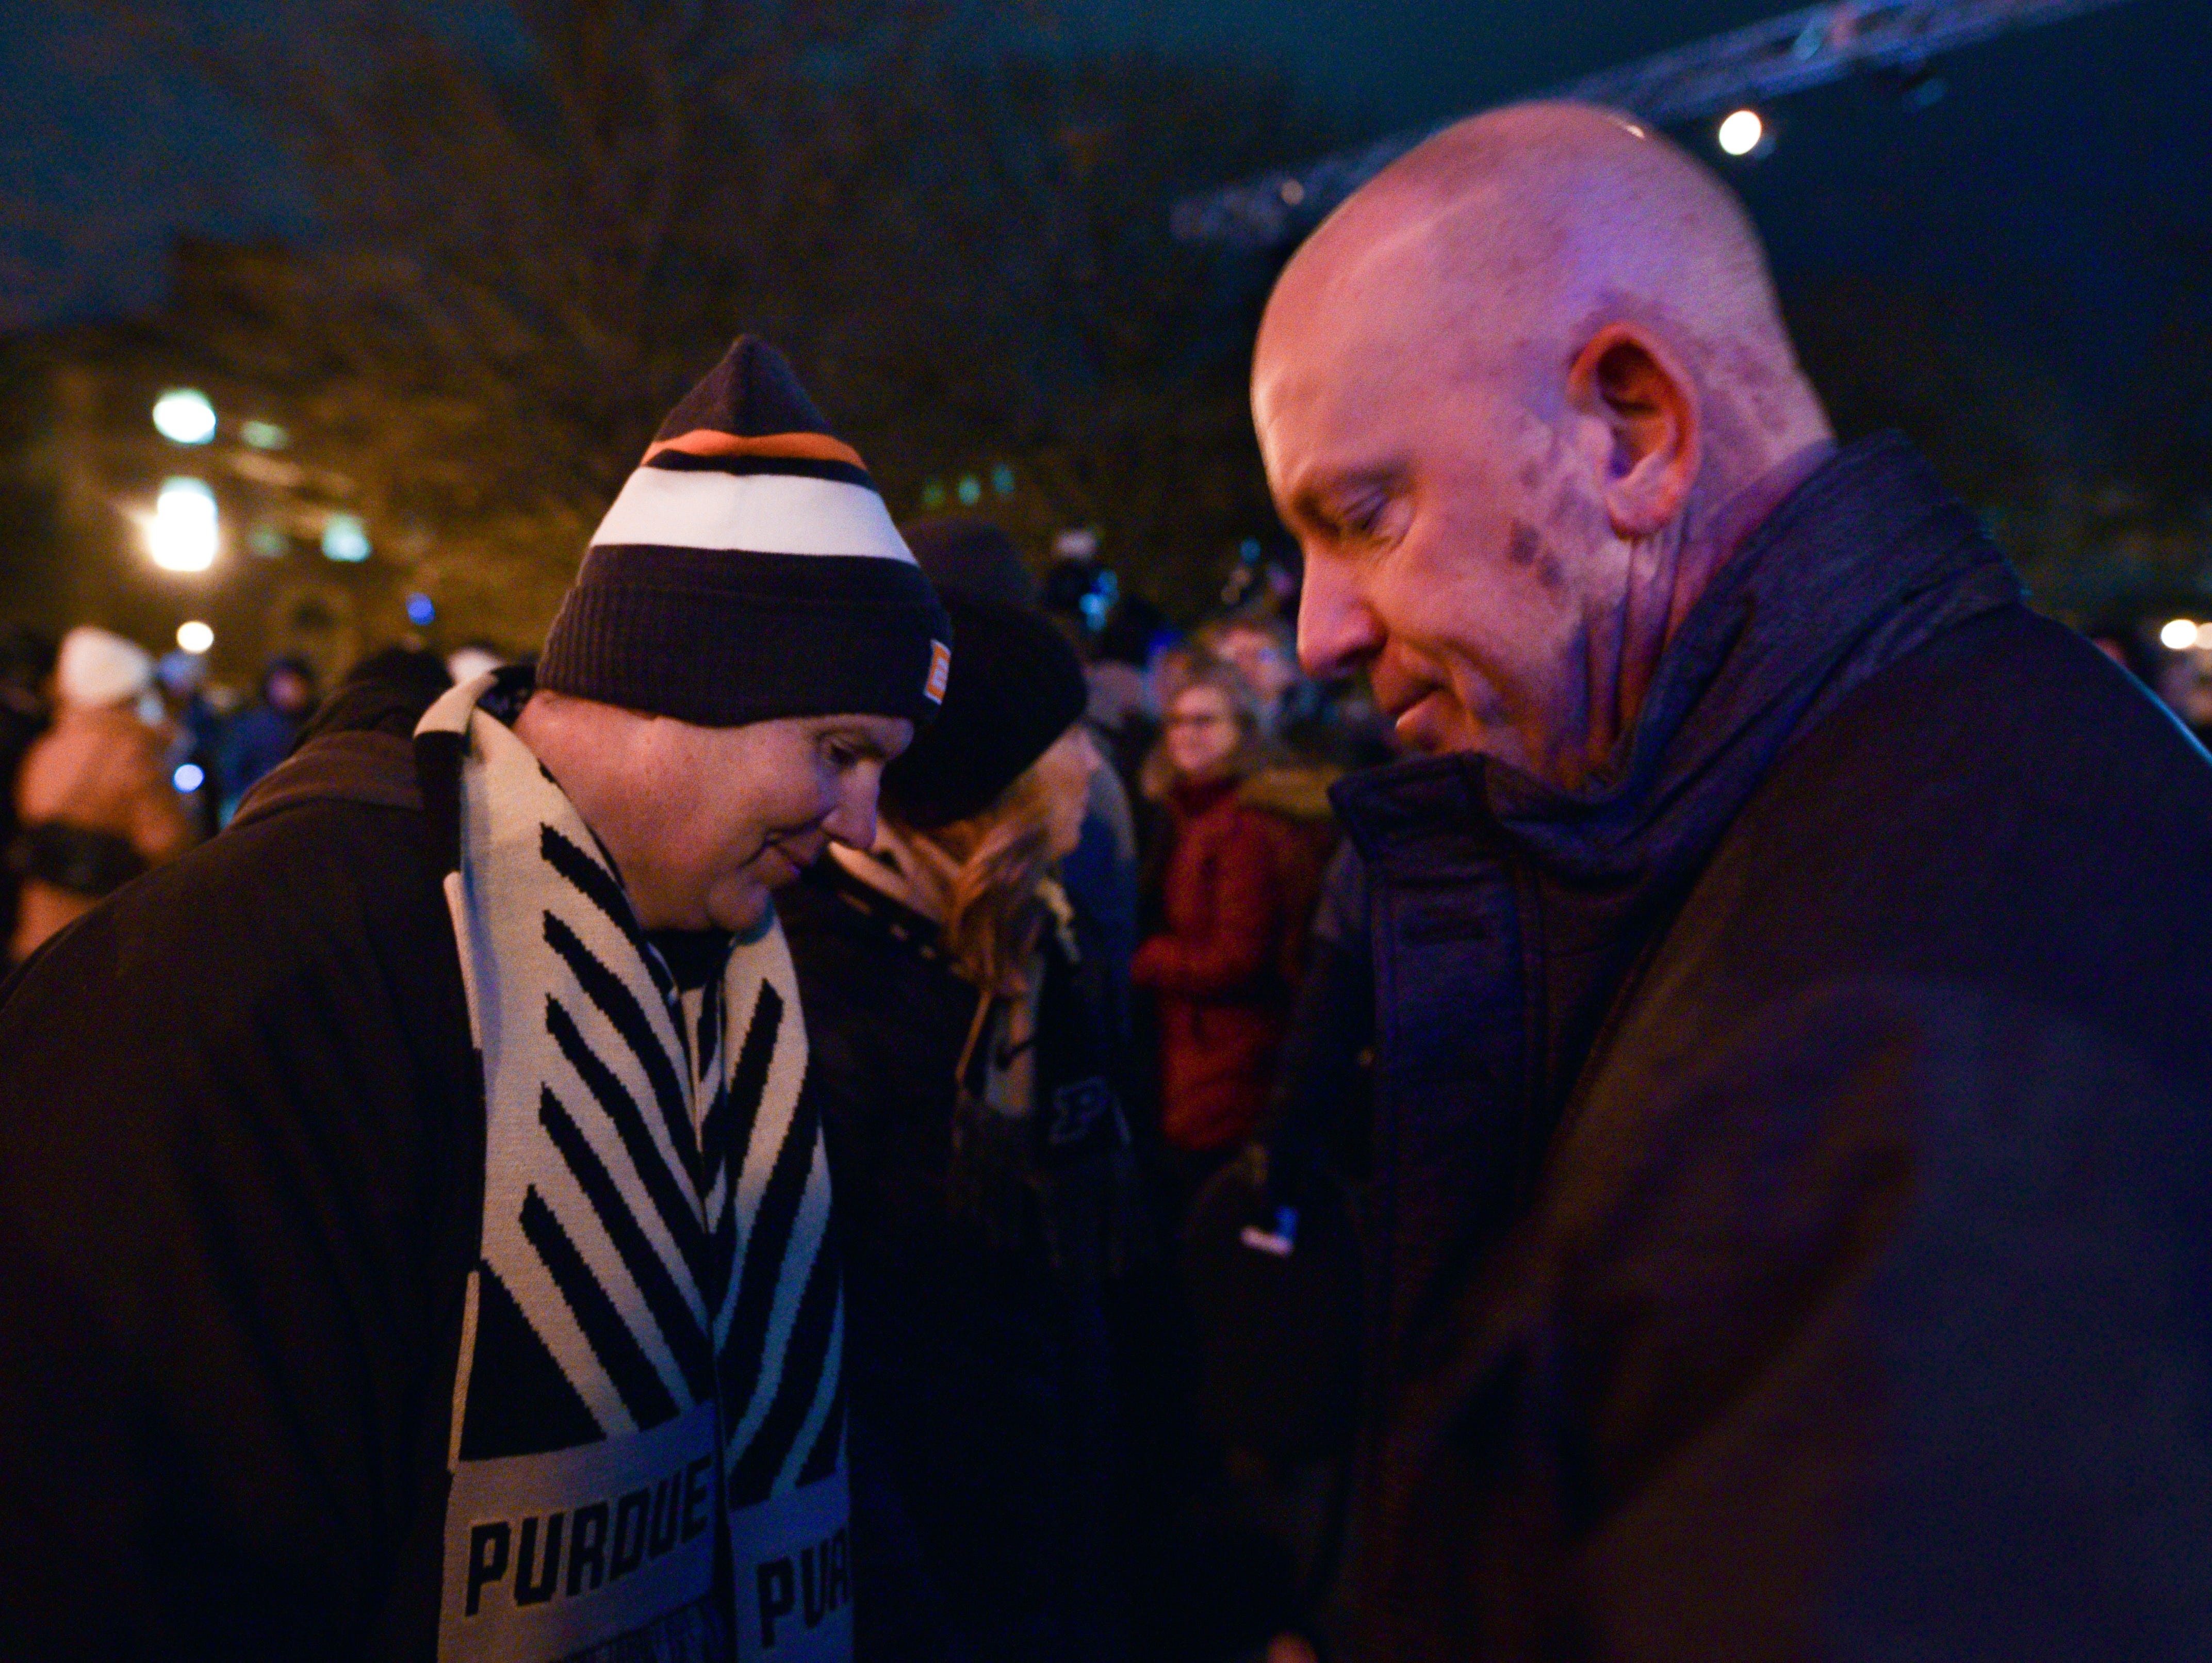 Tony Trent, left, and Purdue football coach Jeff Brohm exchange solemn words at a memorial service and candlelight vigil for Tyler Trent at Purdue University in West Lafayette on January 9, 2019.